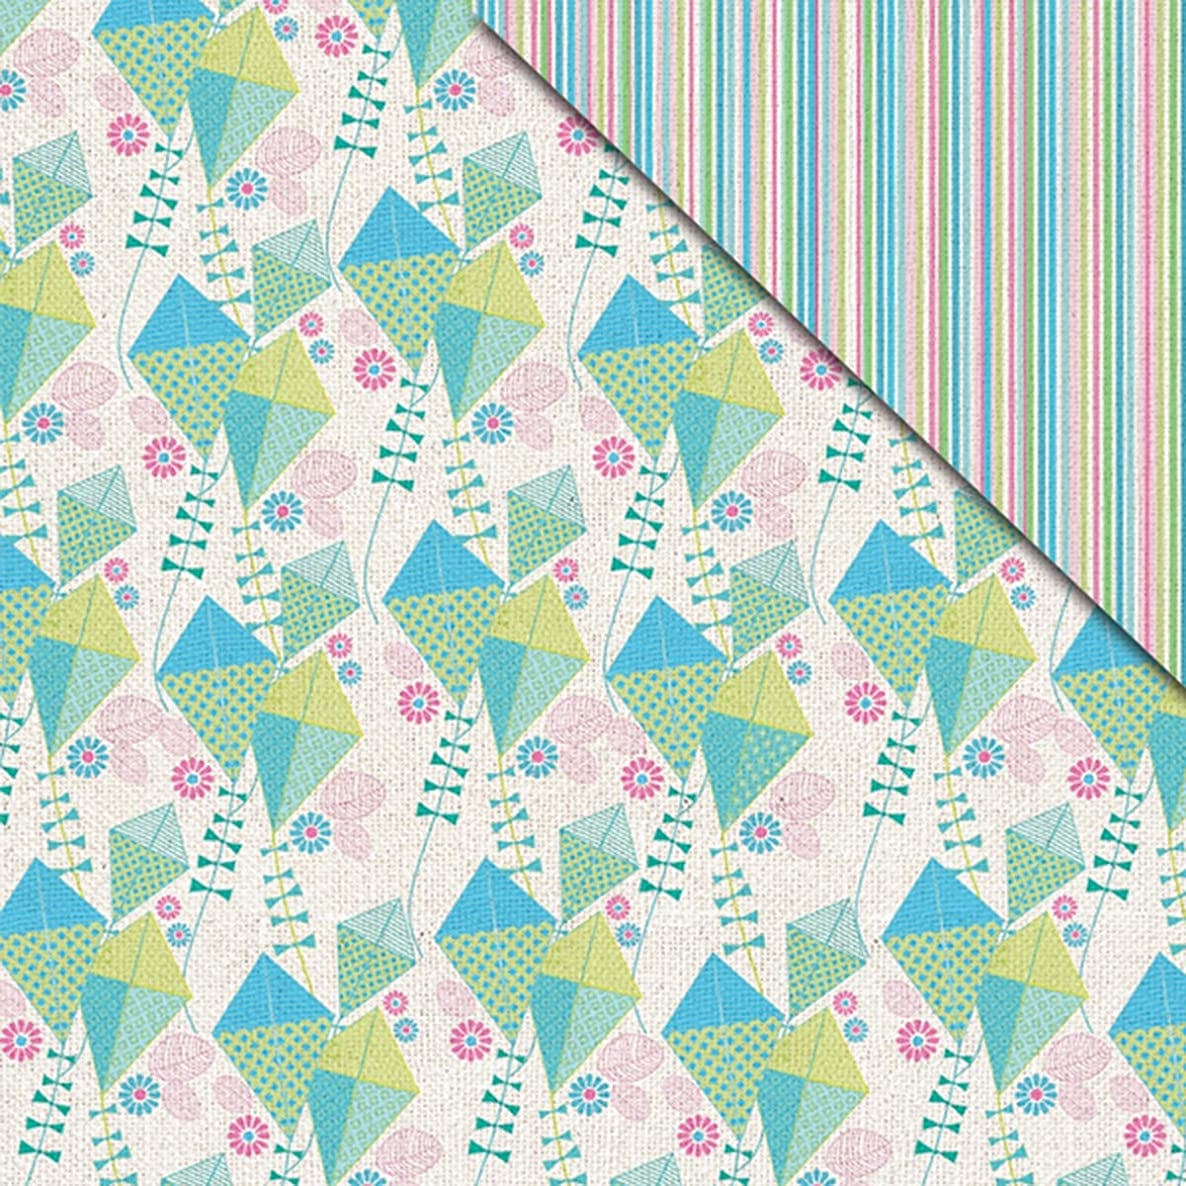 FabScraps C83 003 Kaleidoscope Double-Sided Cardstock (25 Sheets Per Pack), 12